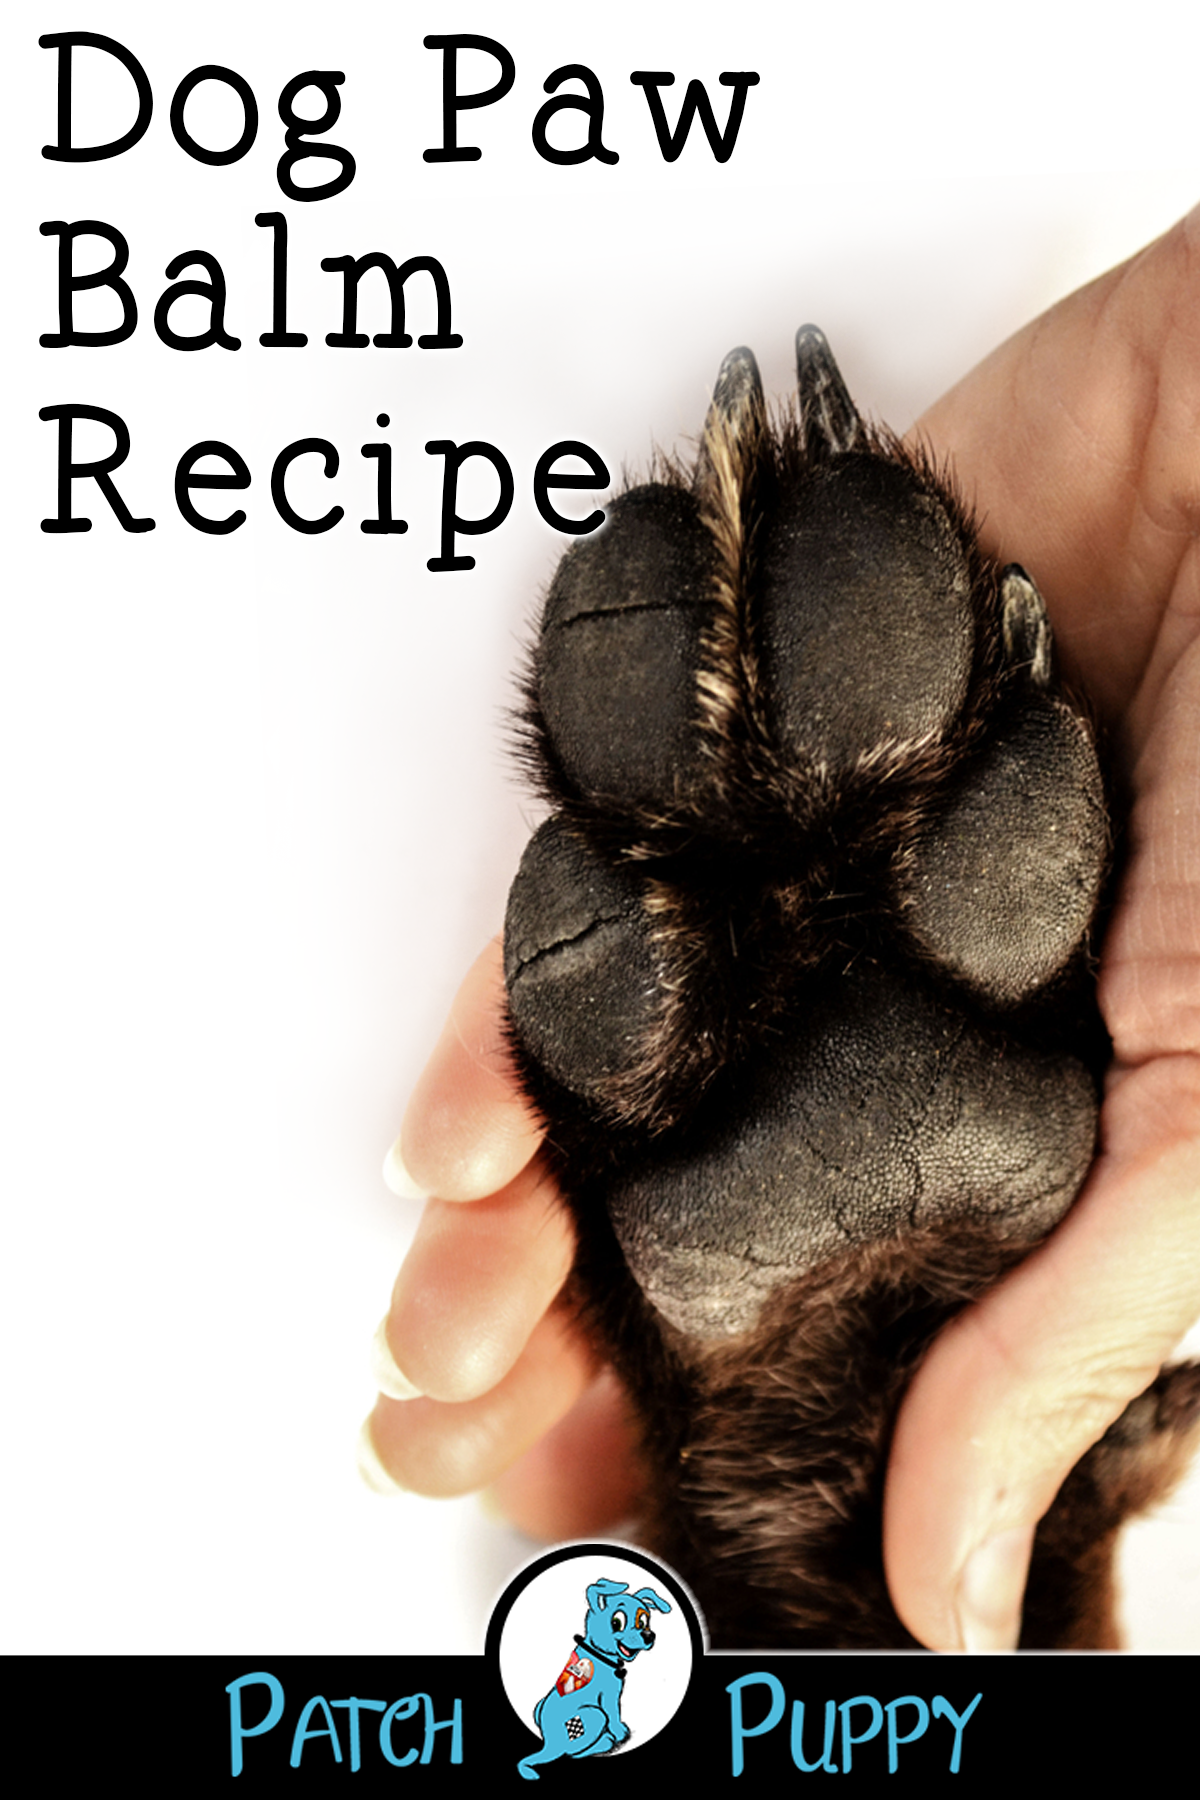 Homemade Paw Wax Will Save Your Pup S Paws In Hot And Cold Weather Dog Paw Balm Paw Balm Paw Wax